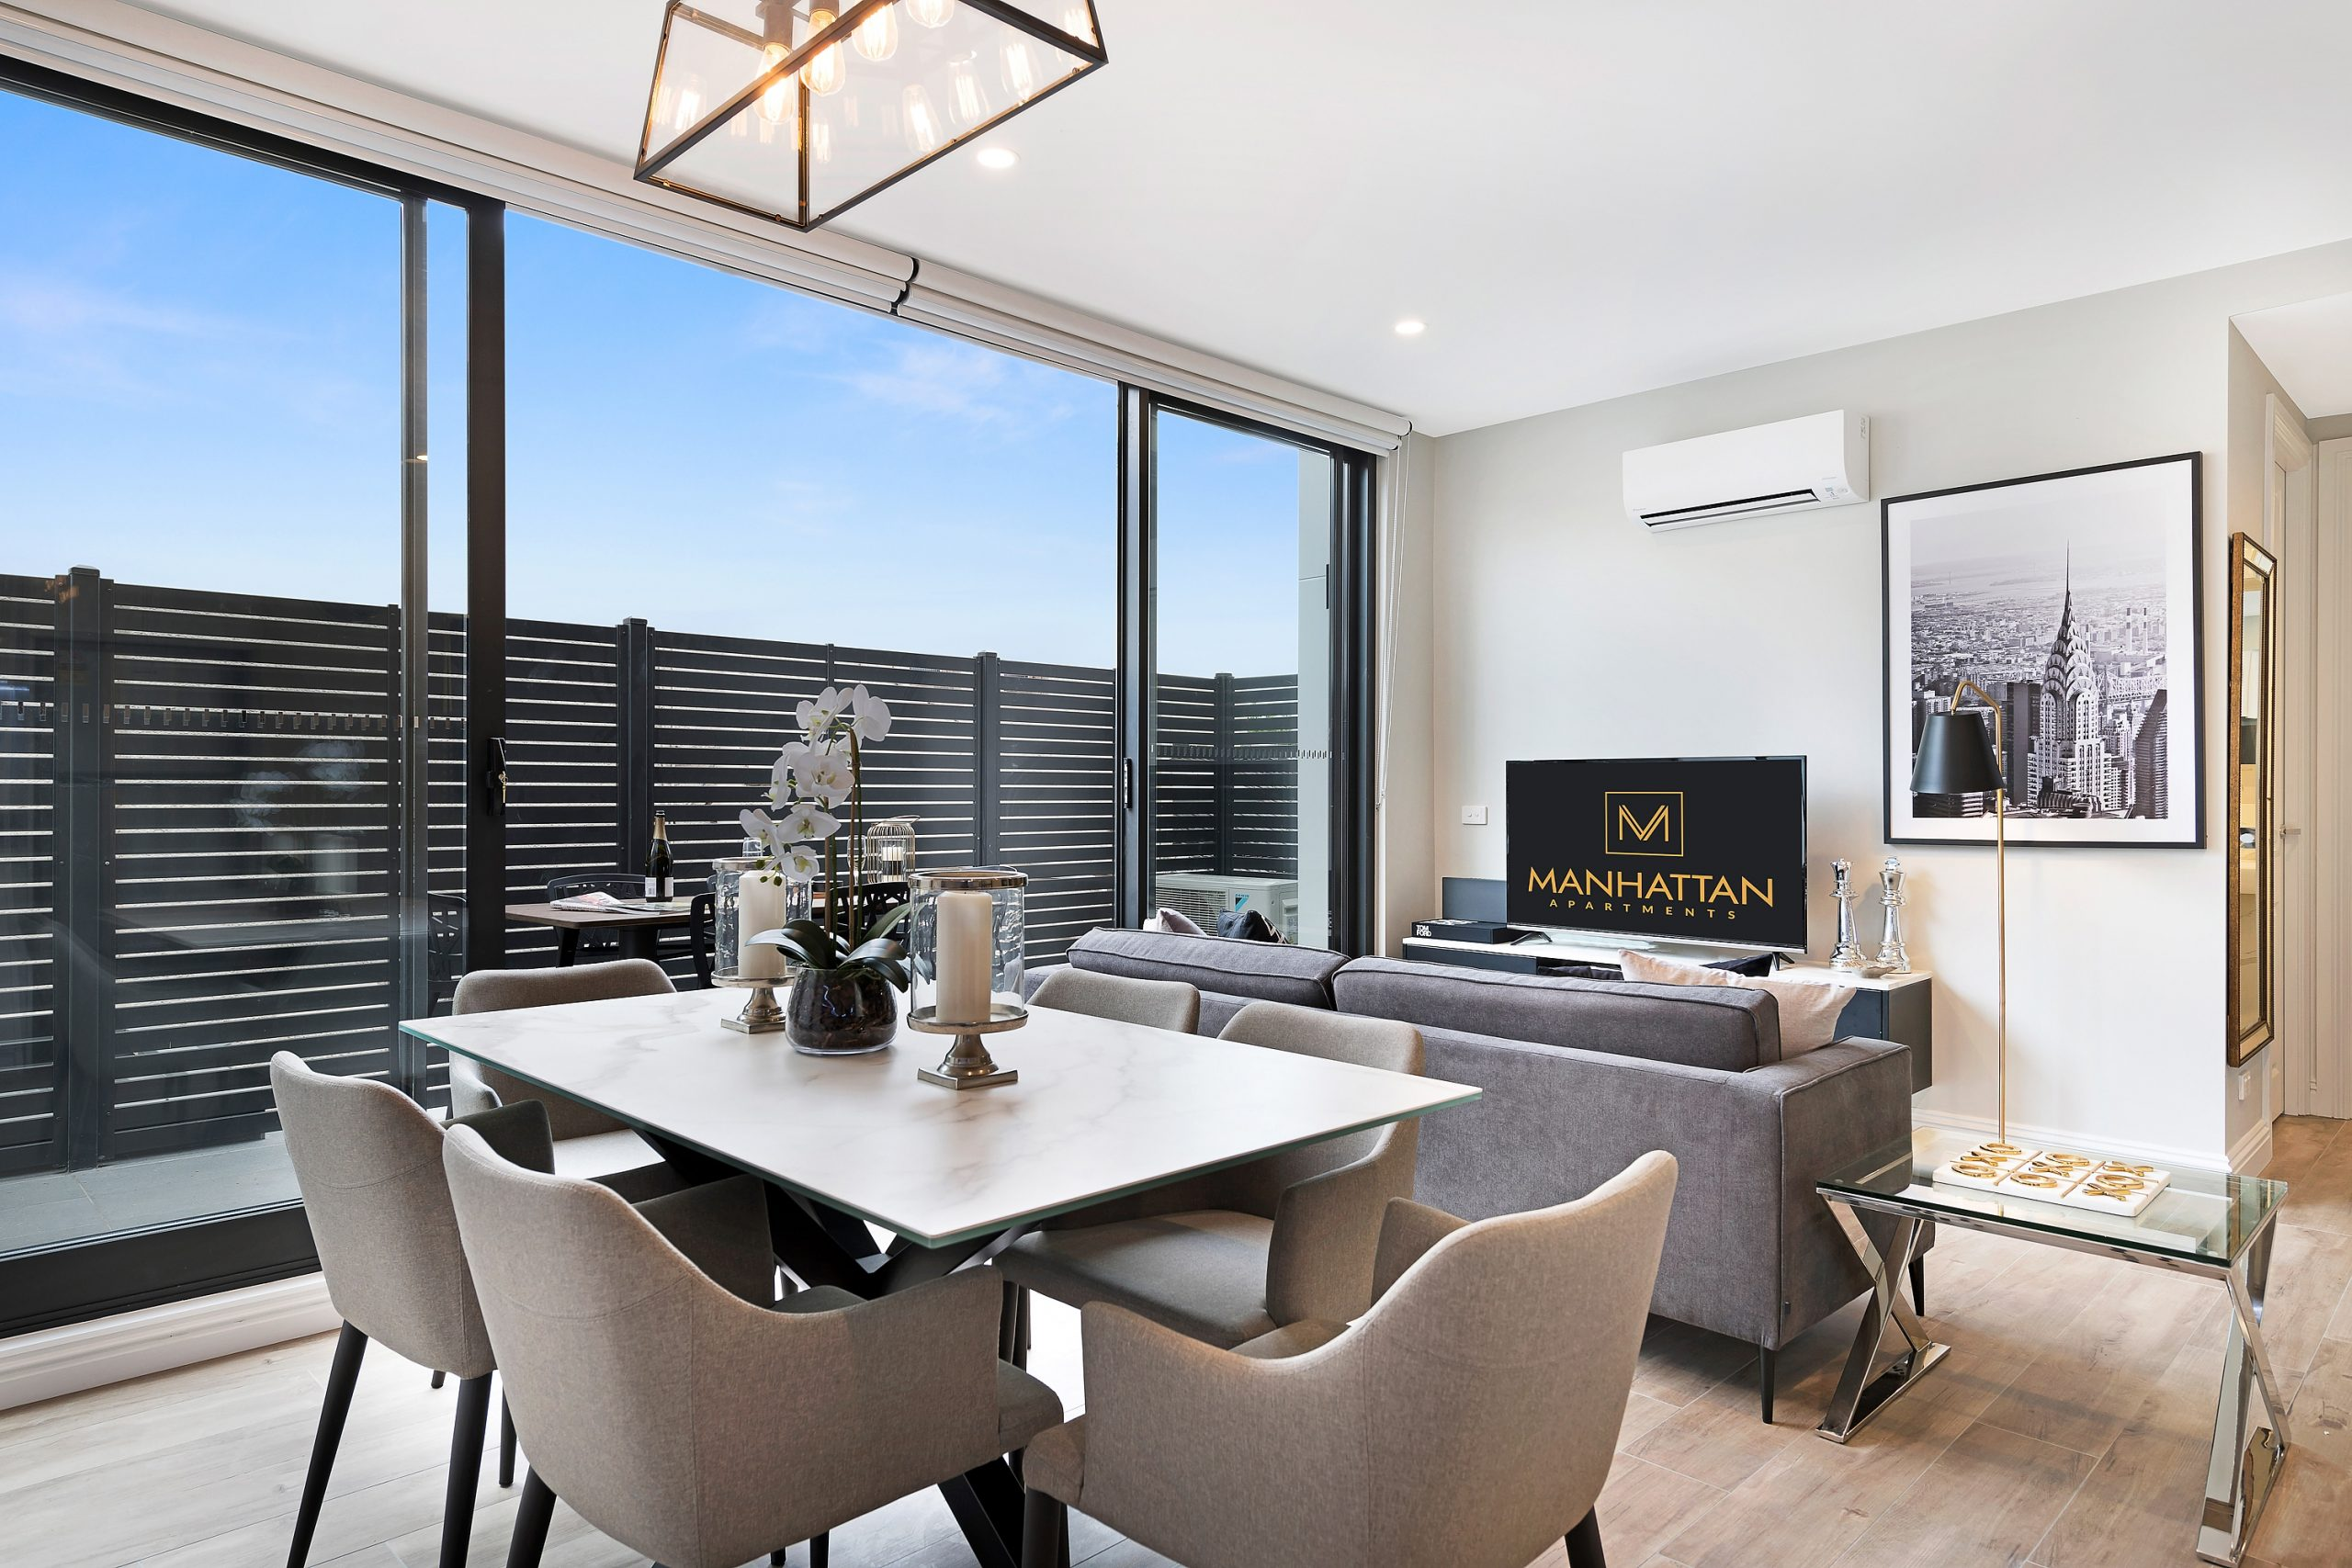 1096-Manhattan-Apartments-466-Dandenong-Road-Caulfield-North-3161-photo59